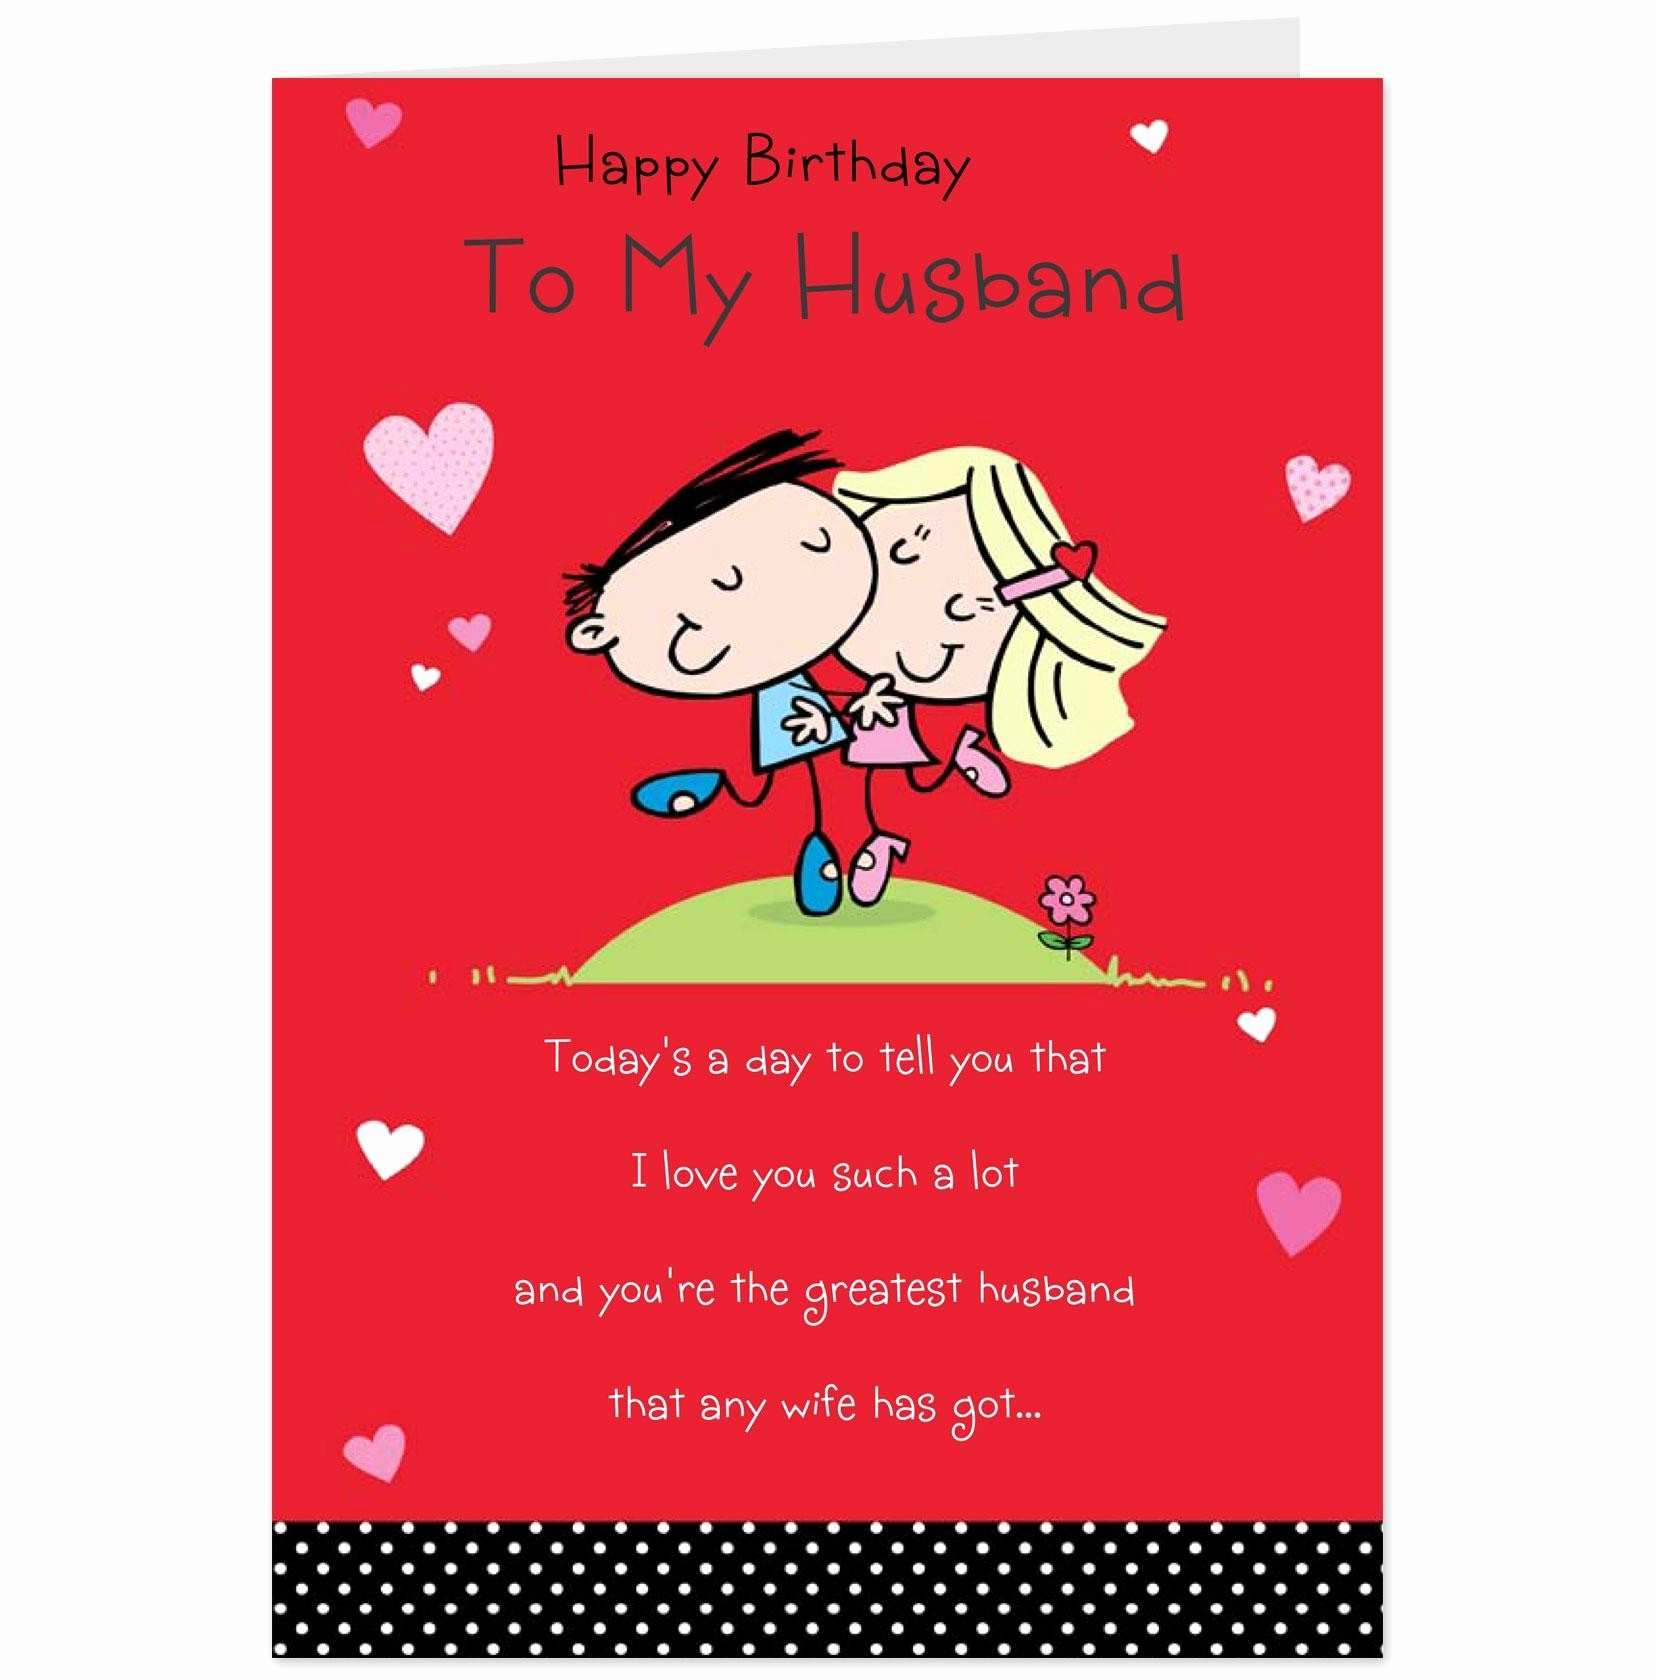 happy birthday wife funny ; funny-50th-birthday-wishes-inspirational-funny-husband-birthday-quotes-luxury-happy-birthday-wishes-wife-of-funny-50th-birthday-wishes